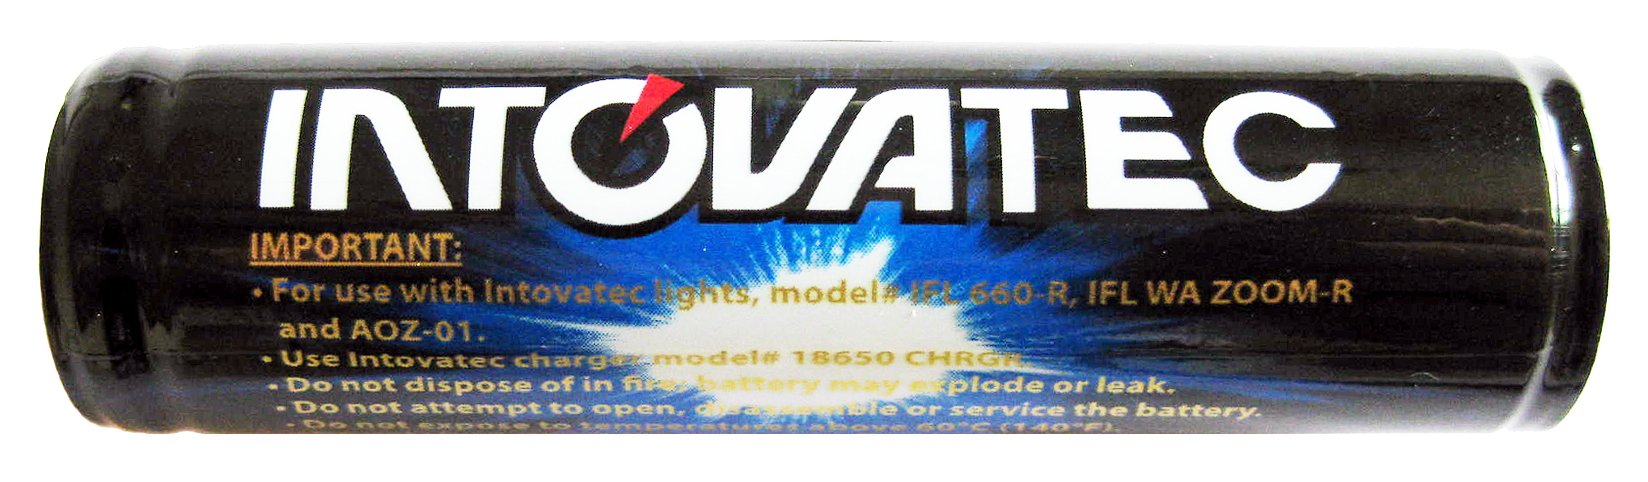 Intova 18650 Li-ion Battery for Action Video Light